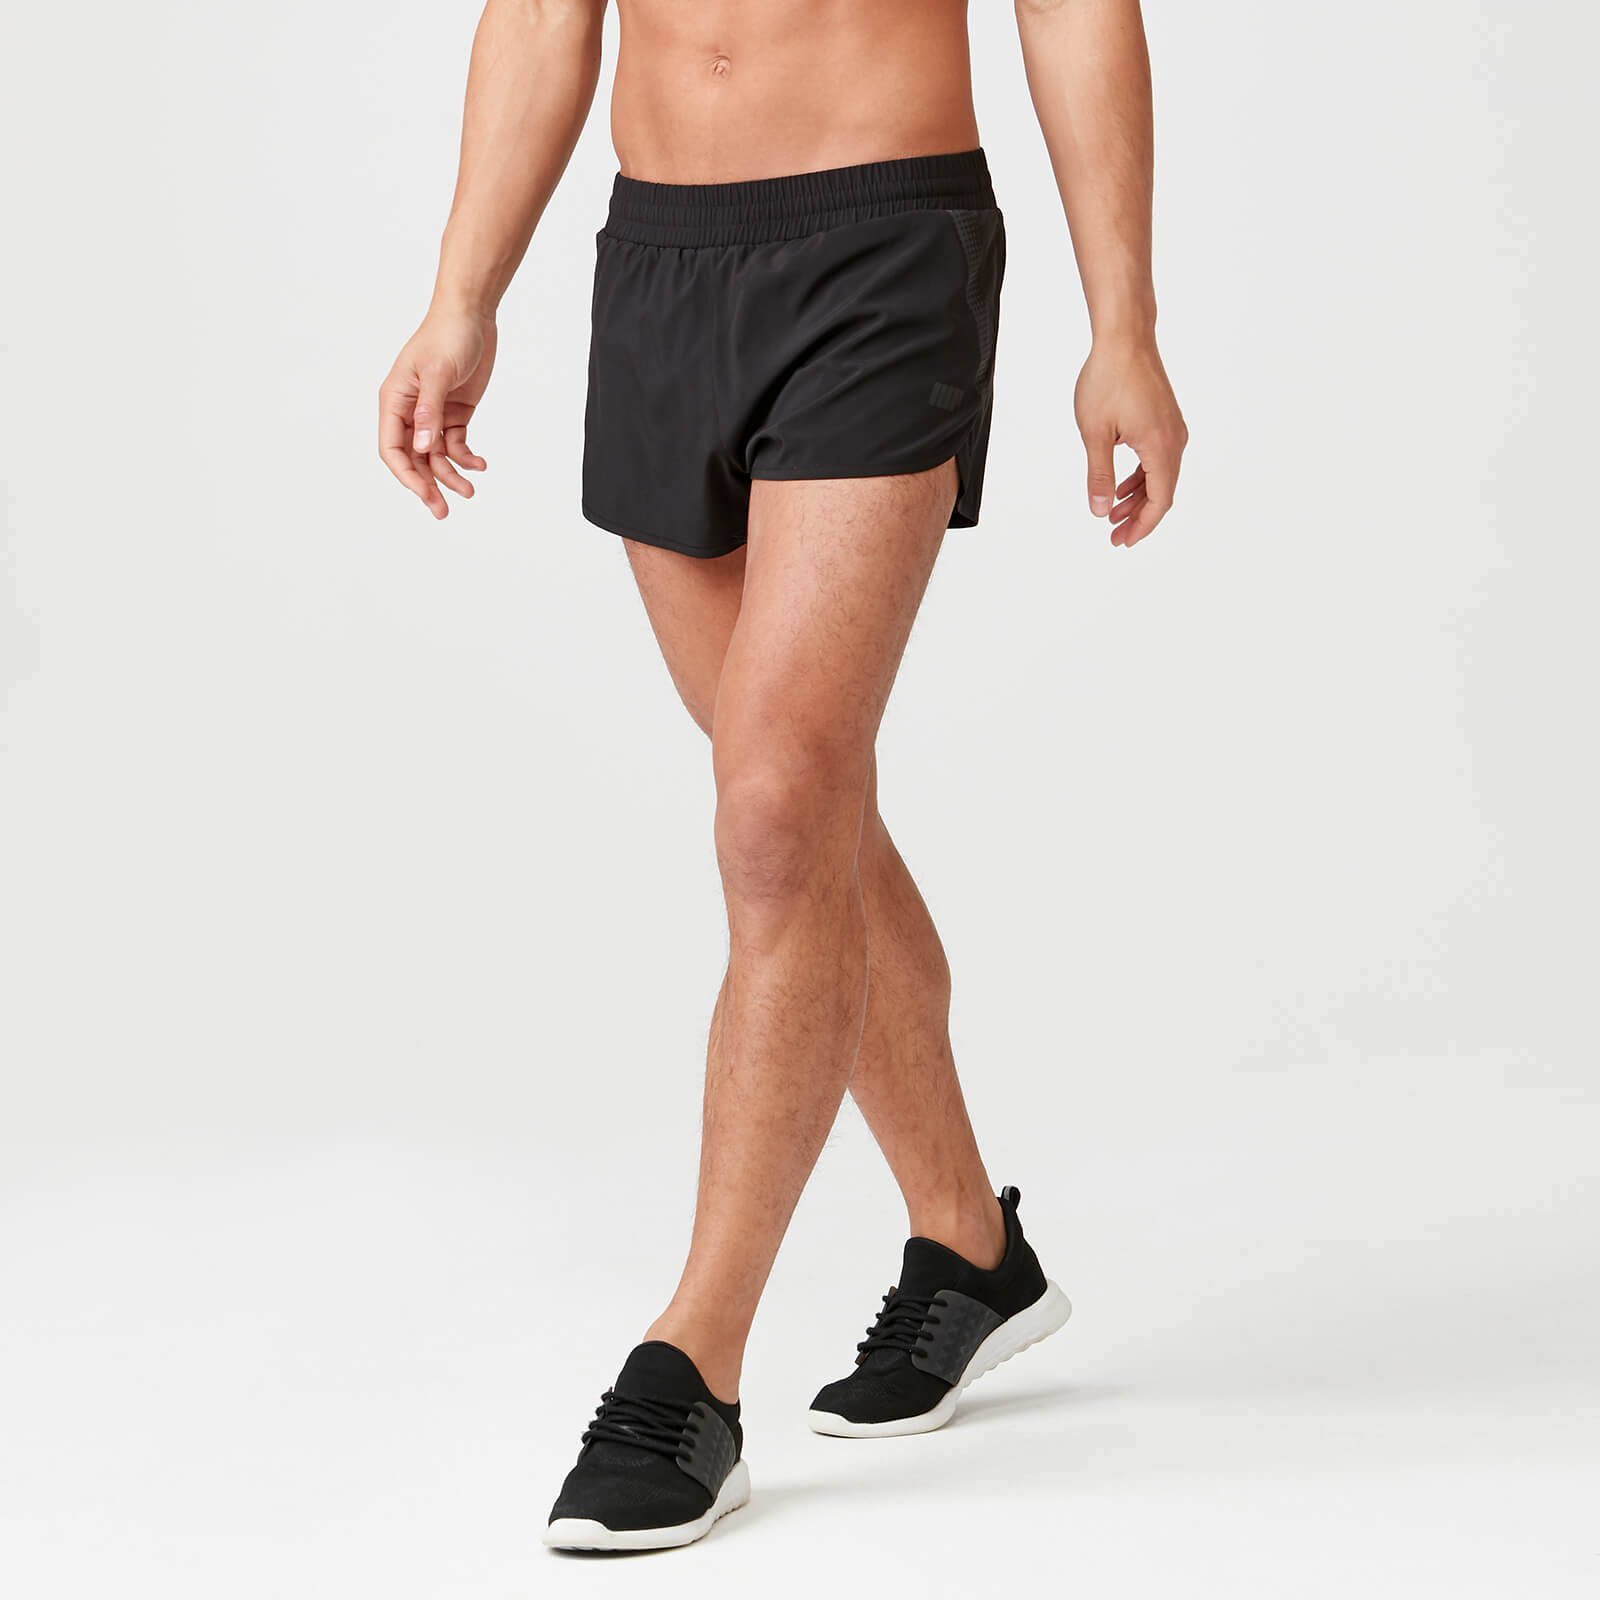 Boost Shorts - Black - S